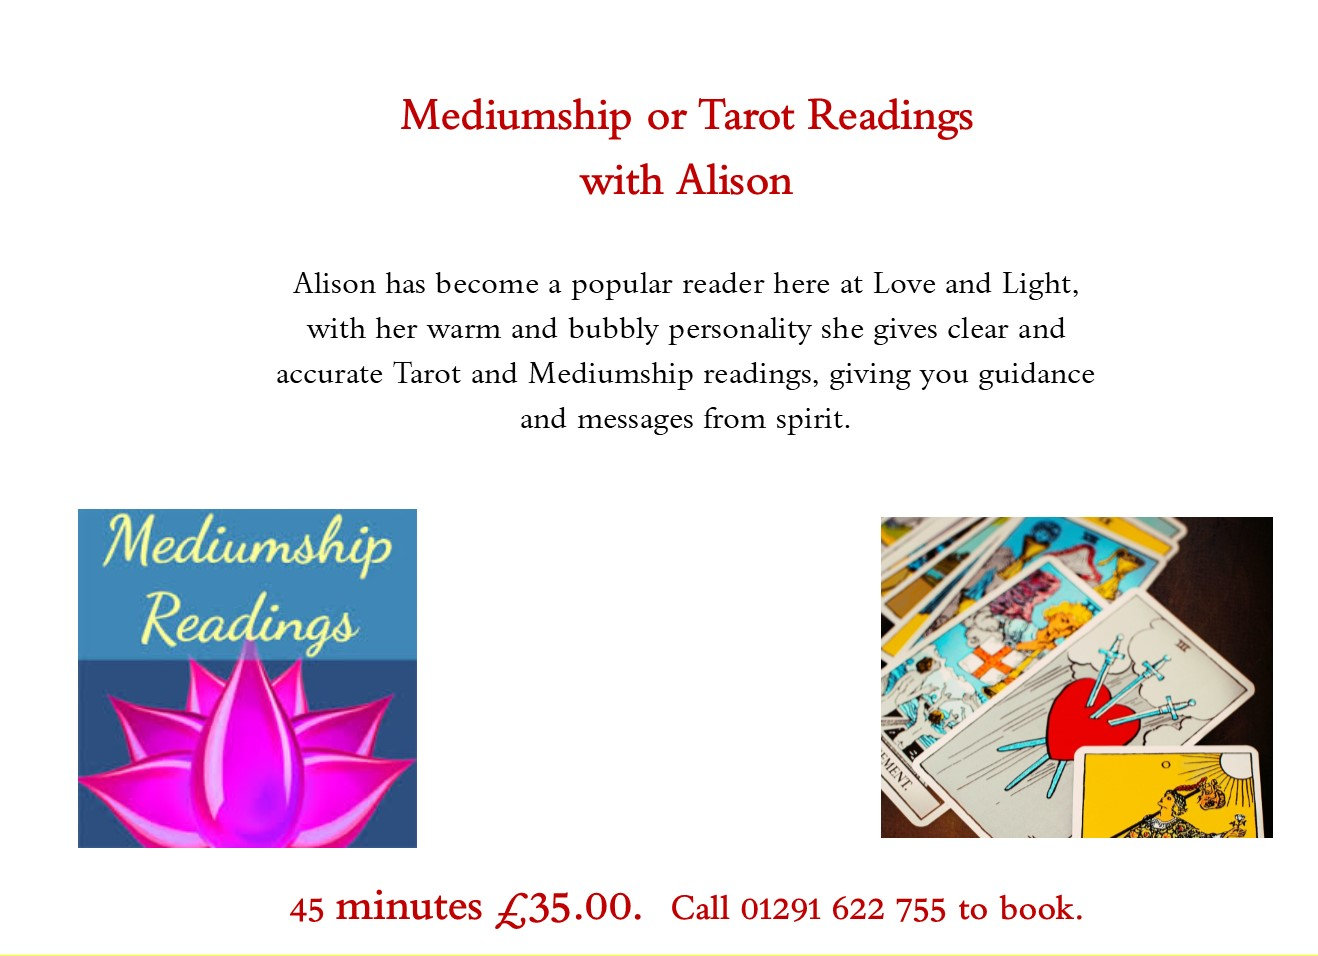 Mediumship readings with Alison